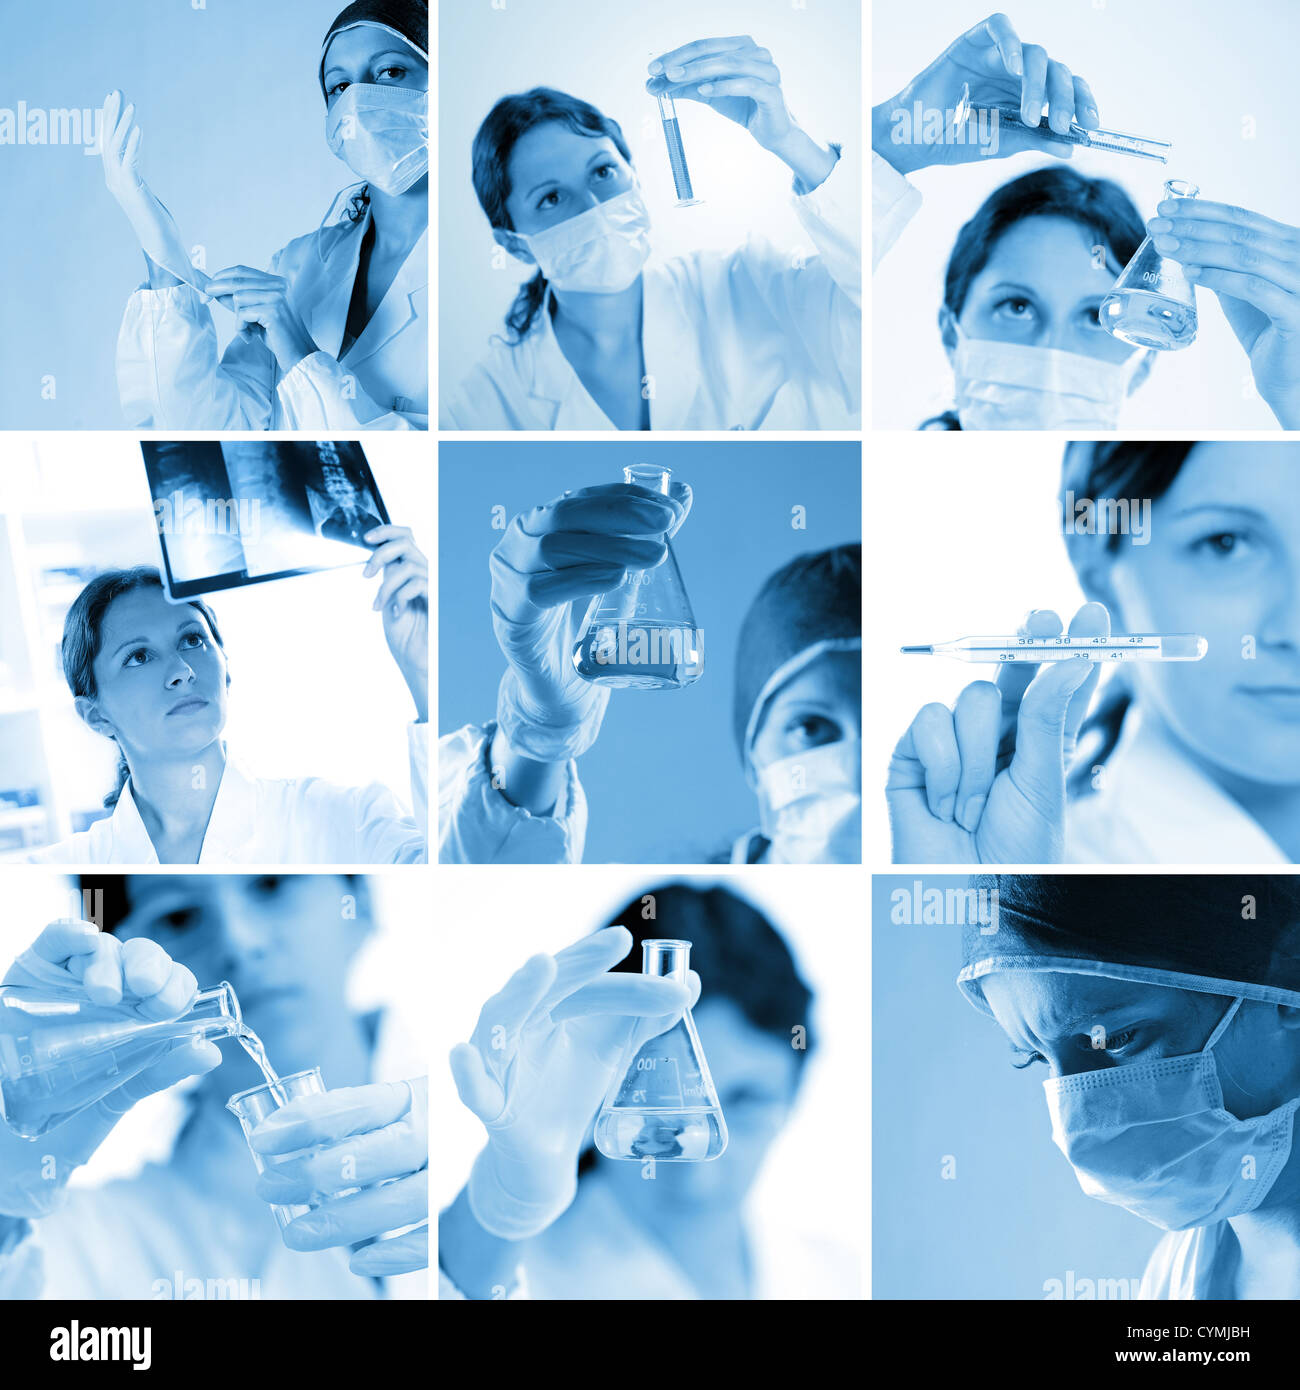 composition of medical images - Stock Image